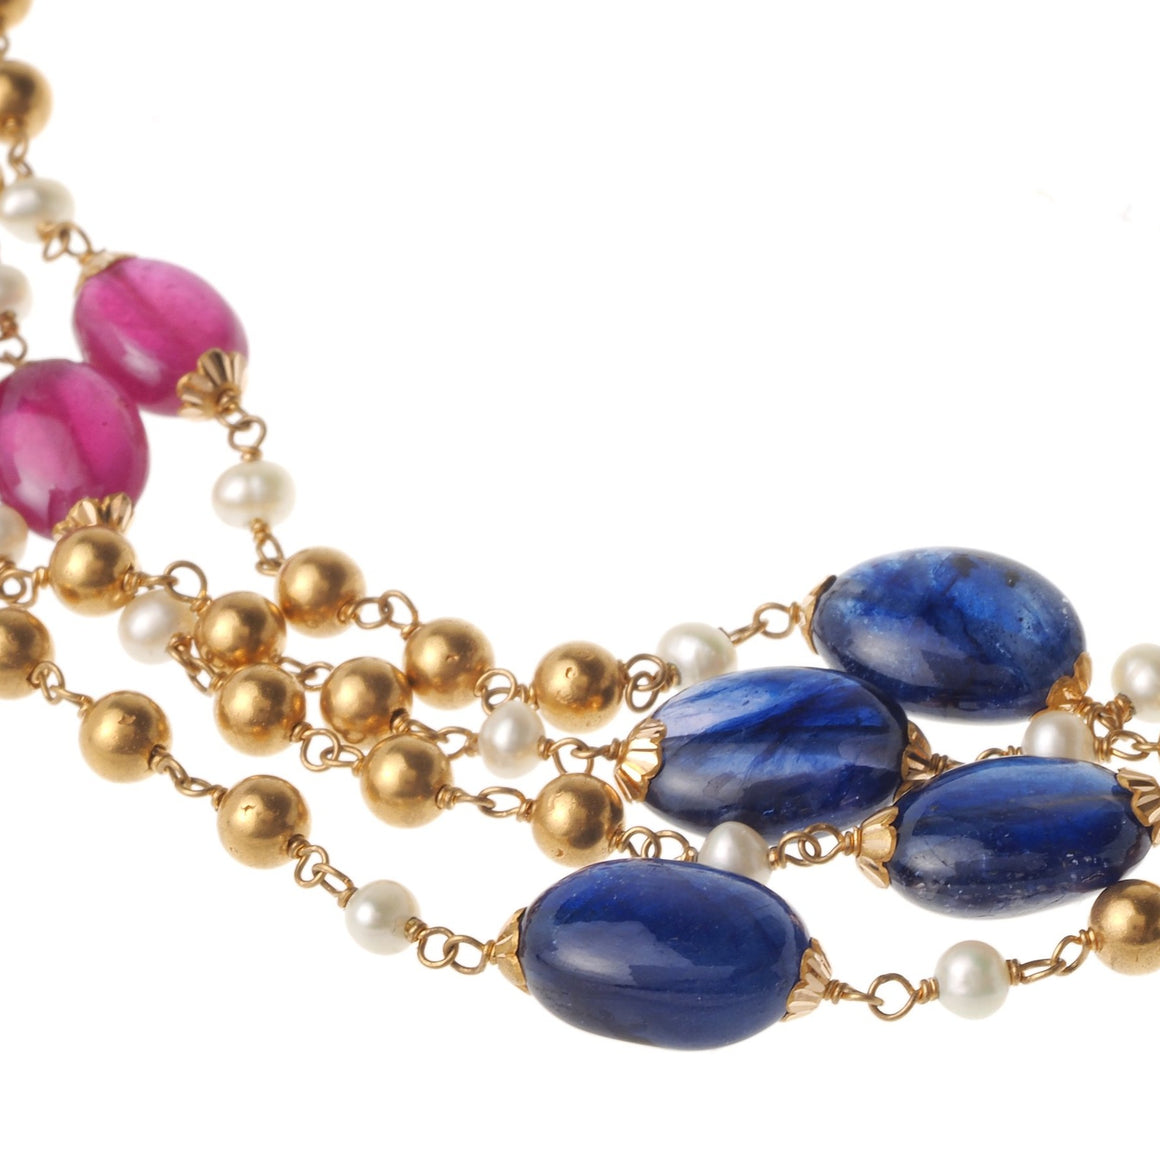 22ct Gold Antiquated Look Necklace with Cultured Pearls, Simulated Pearls and treated Emeralds, Blue Sapphires and Rubies (GMS-S944)